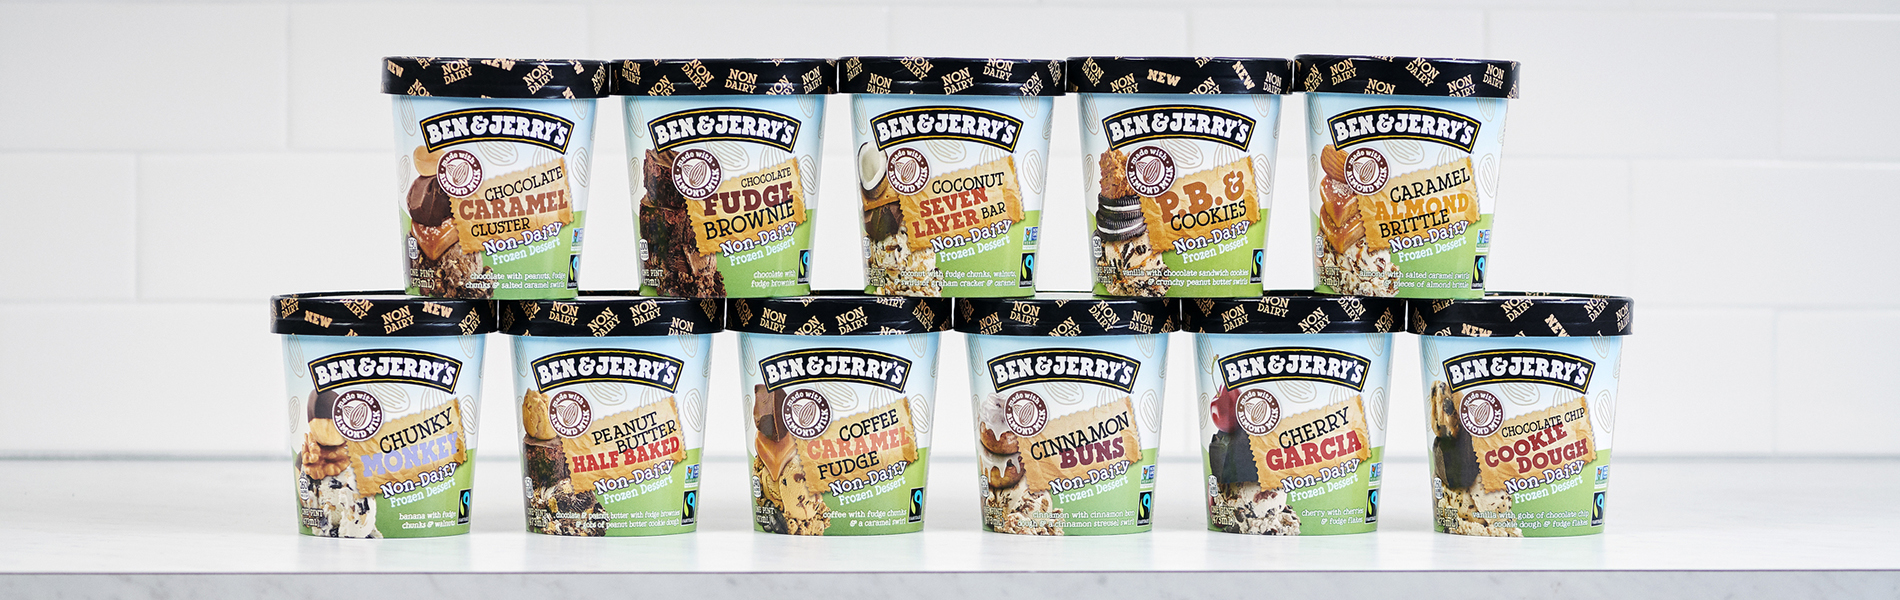 Ben & Jerry's Non-dairy lineup